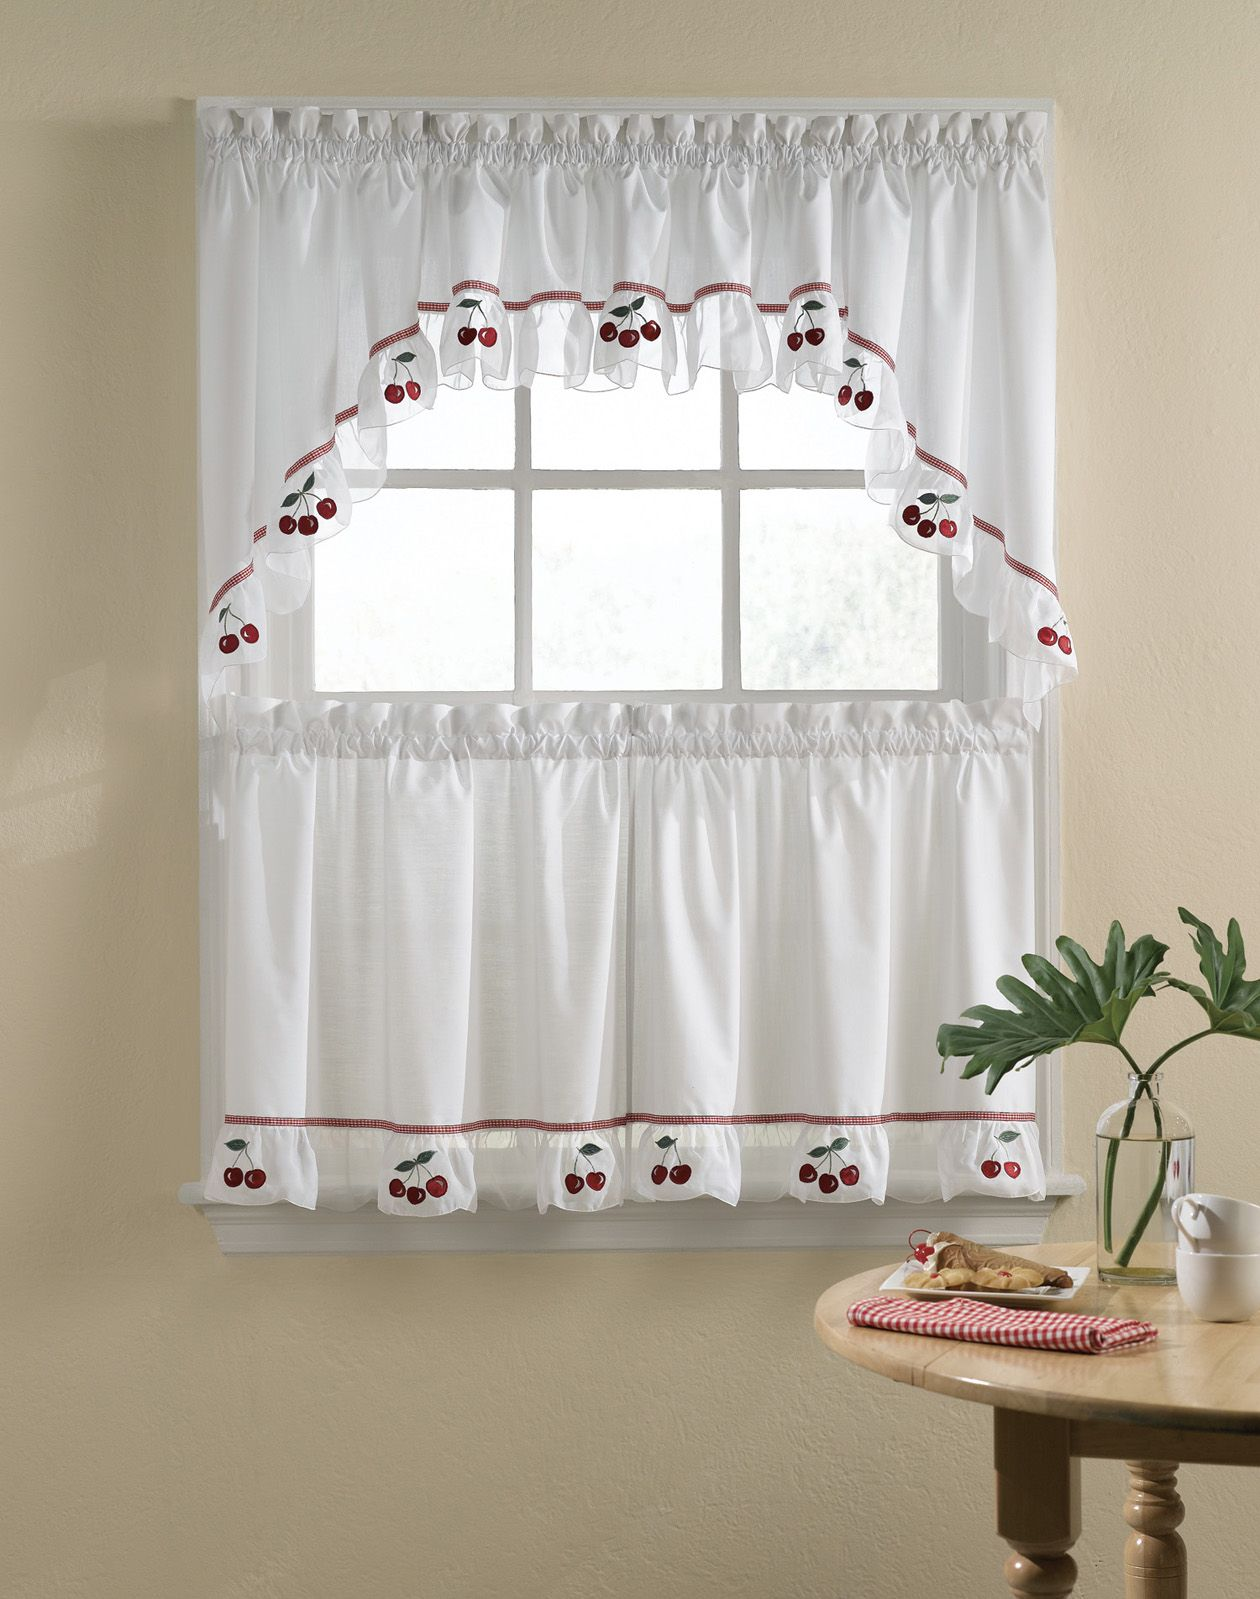 Our Favorite Kitchen Window Curtain Ideas 2018 For 2019 Curtains